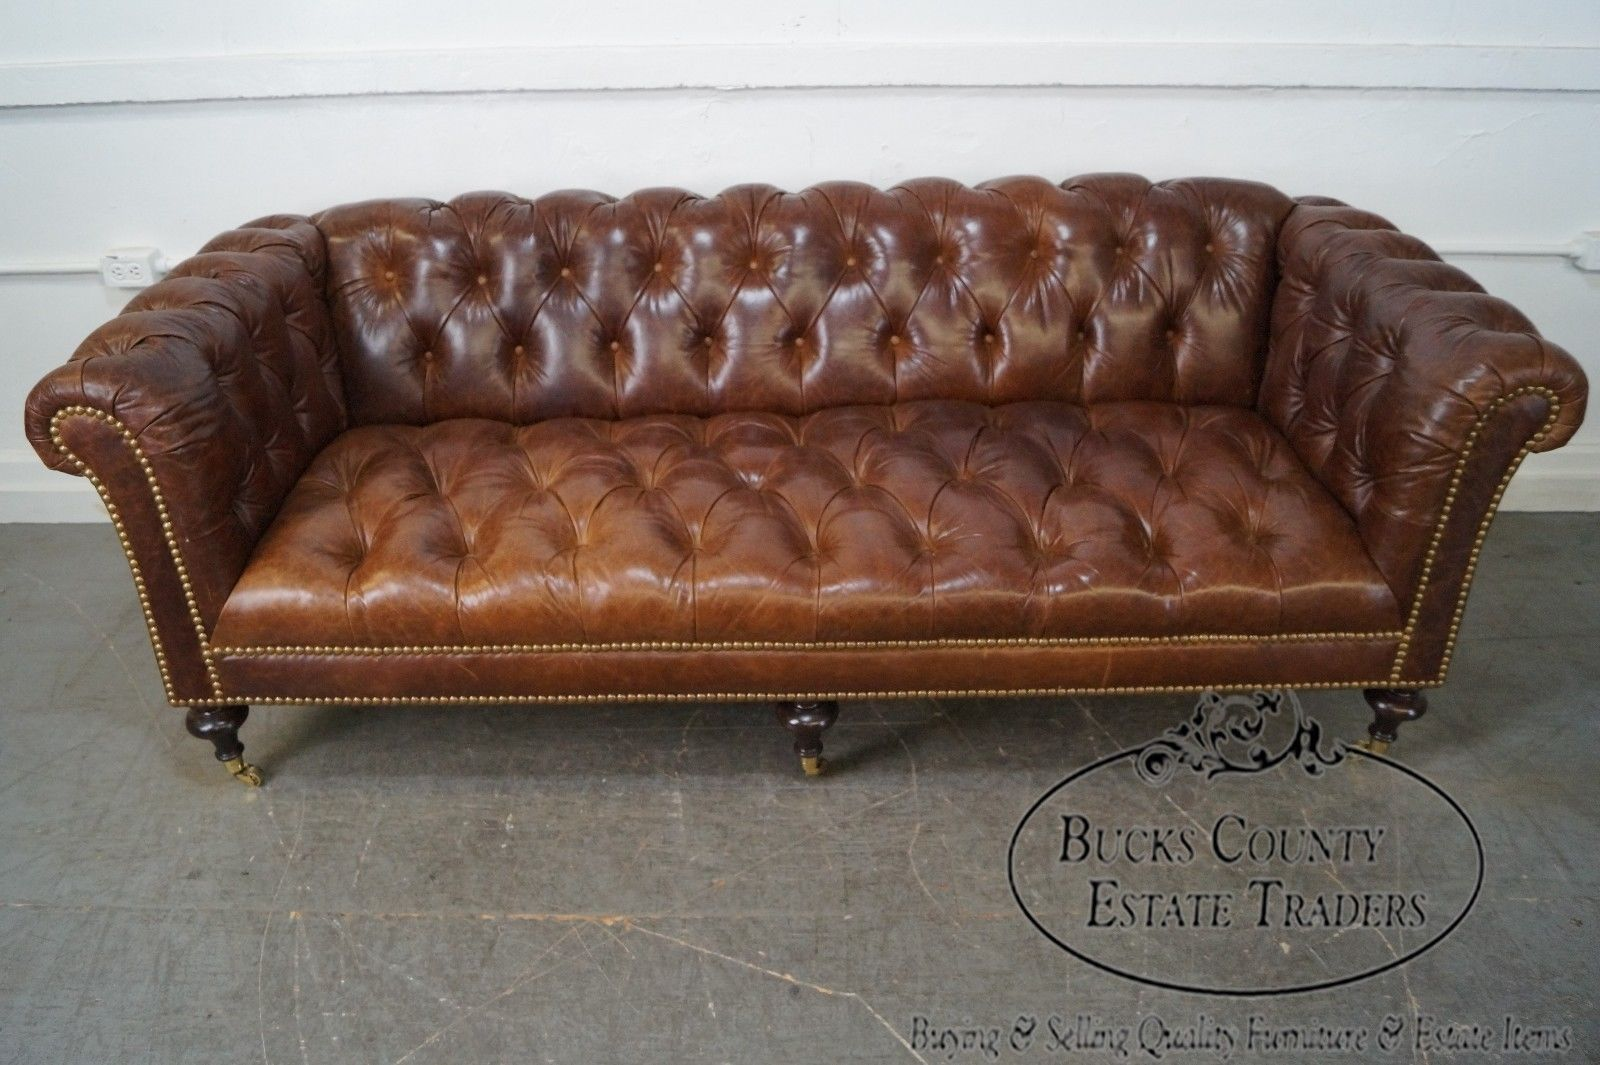 Quality Brown Tufted Leather Chesterfield Sofa Possibly Ralph